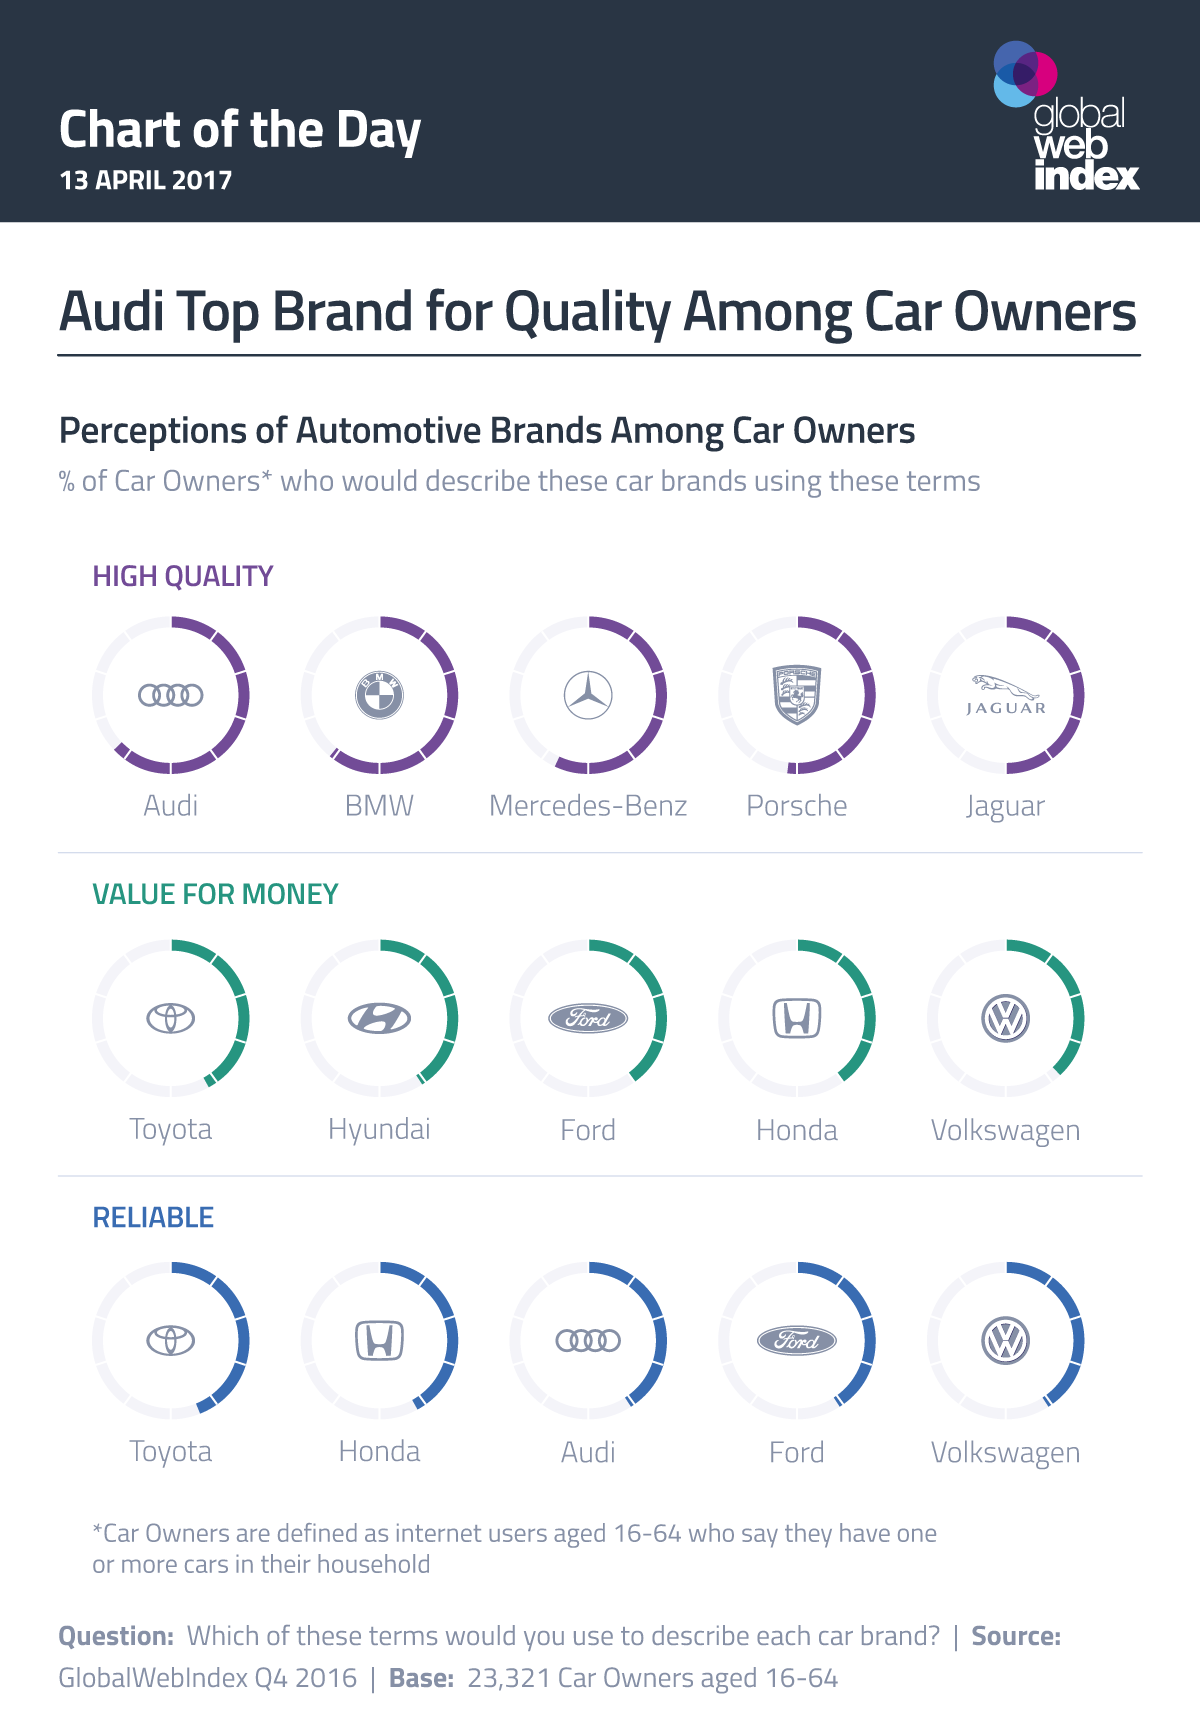 Audi Top Brand for Quality Among Car Owners